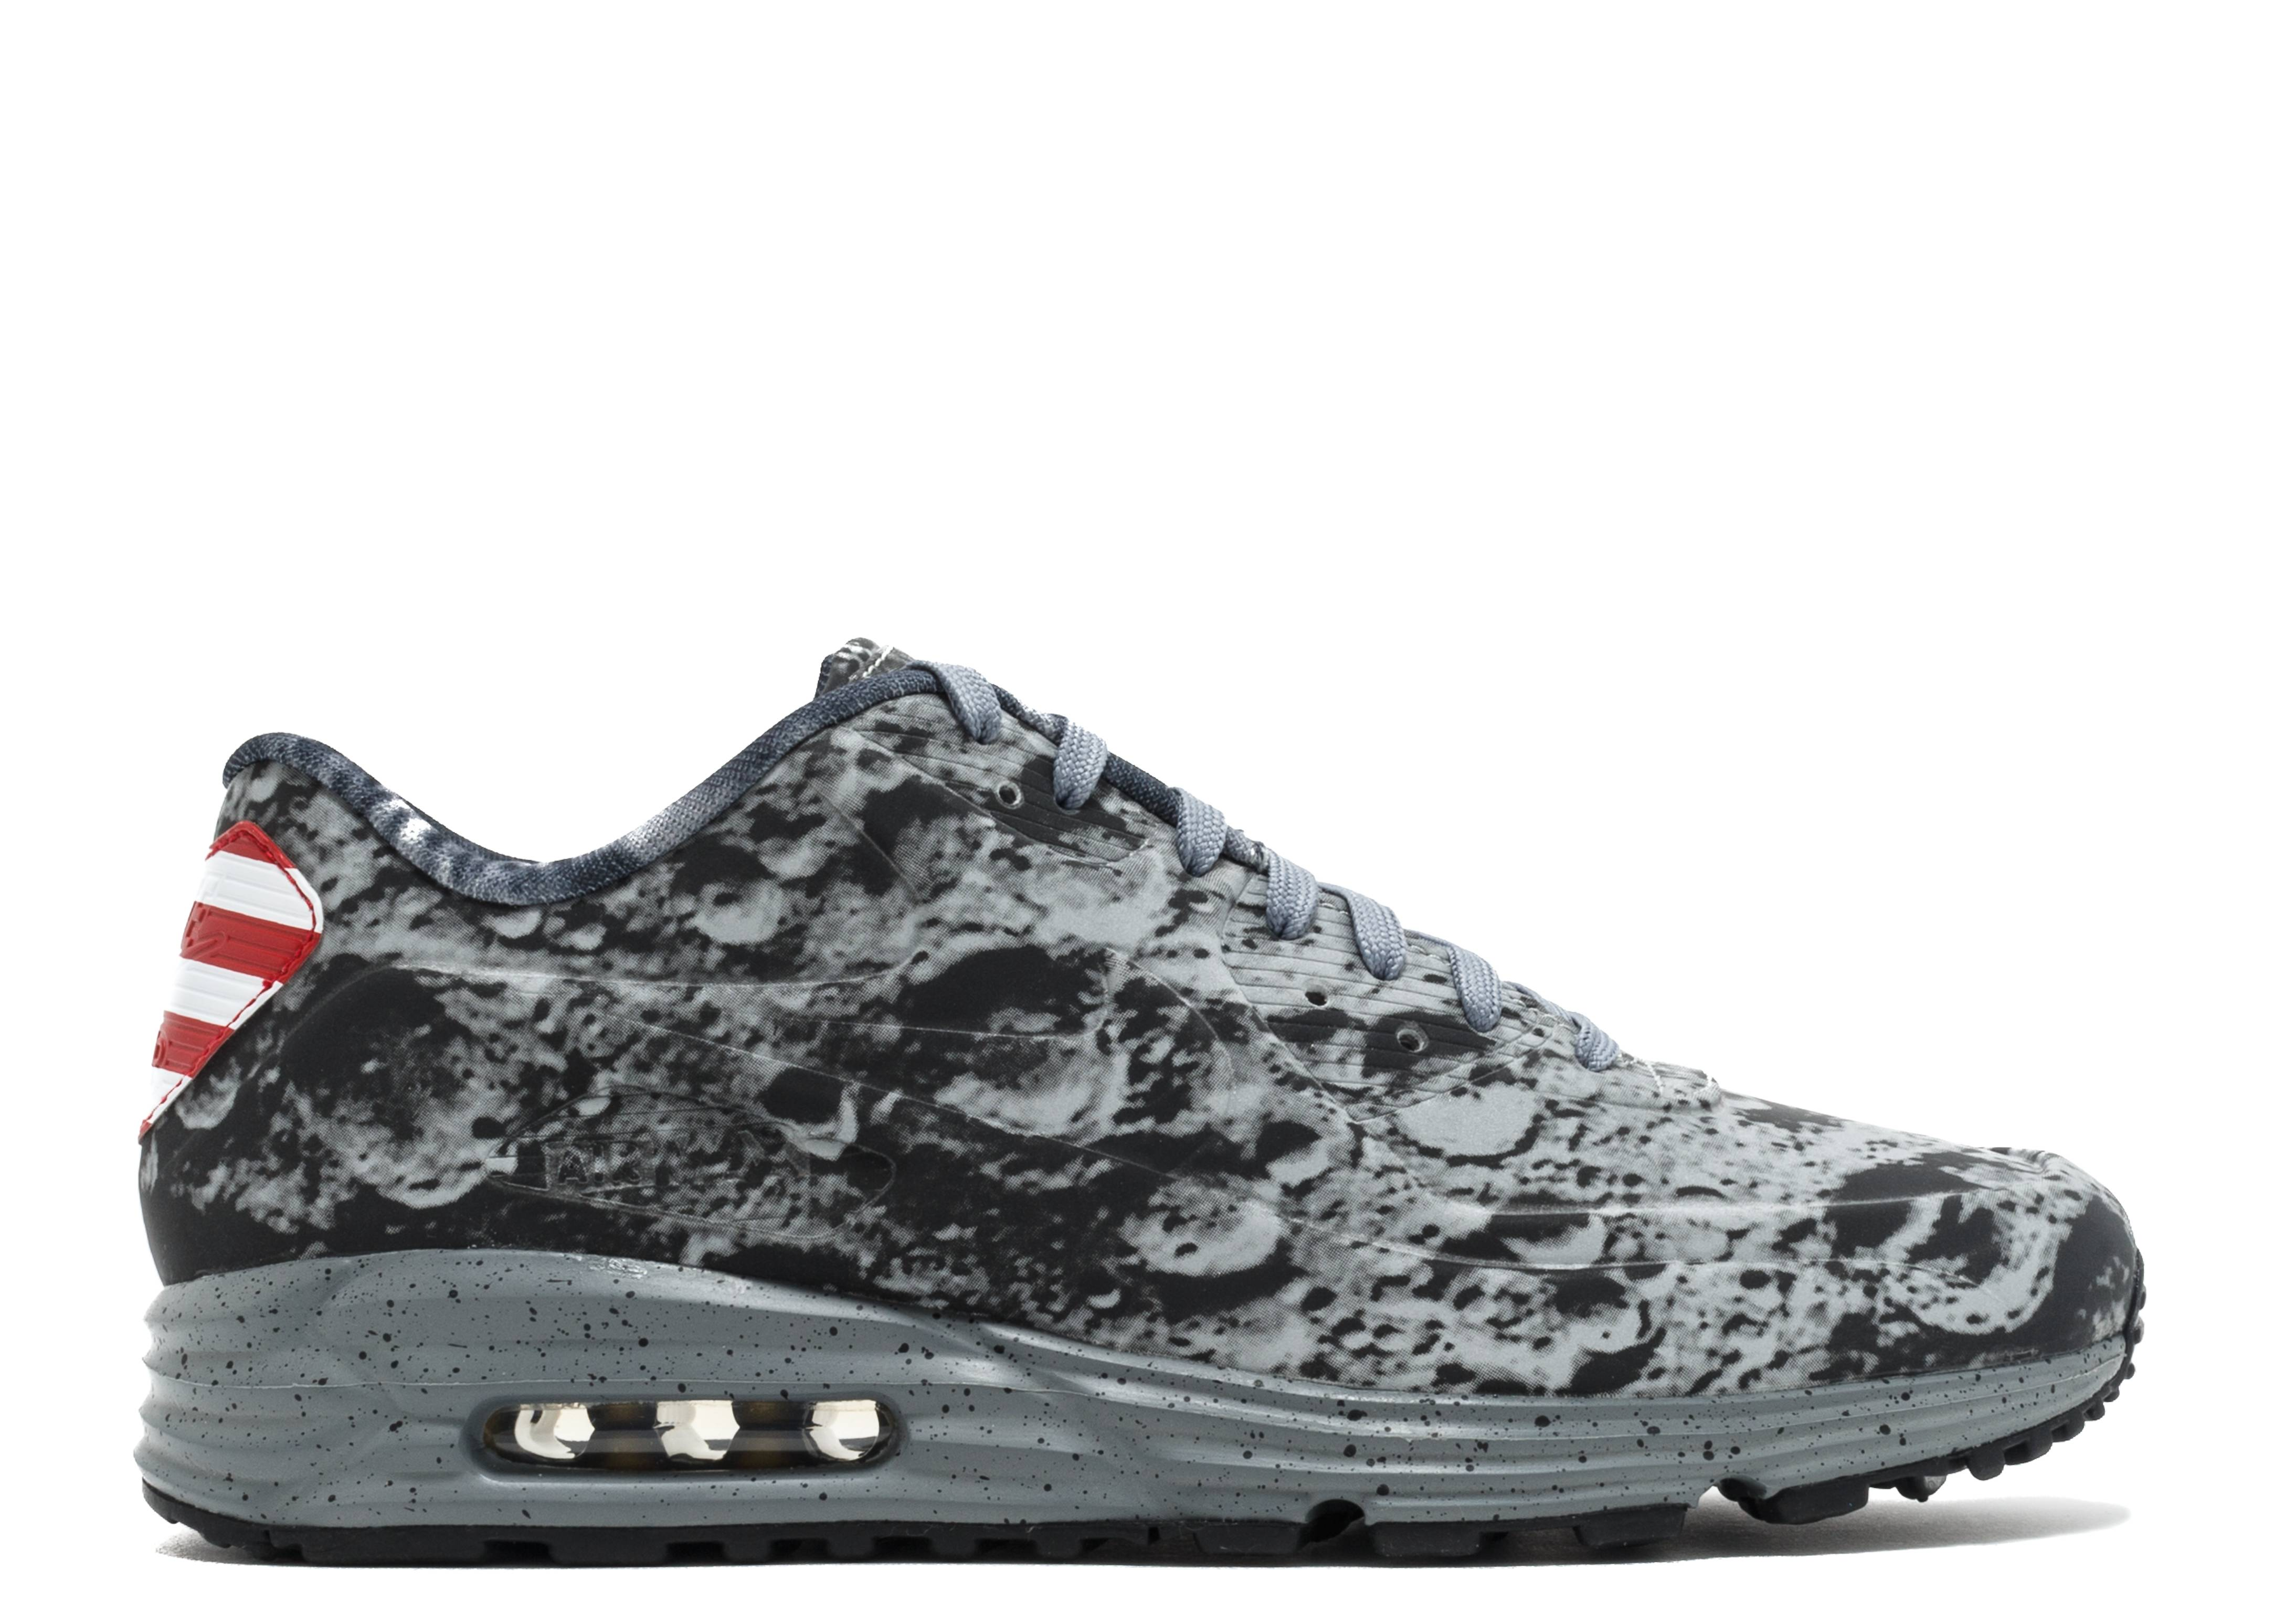 air max lunar 90 sp moon landing rflct slvr rflct slvr. Black Bedroom Furniture Sets. Home Design Ideas